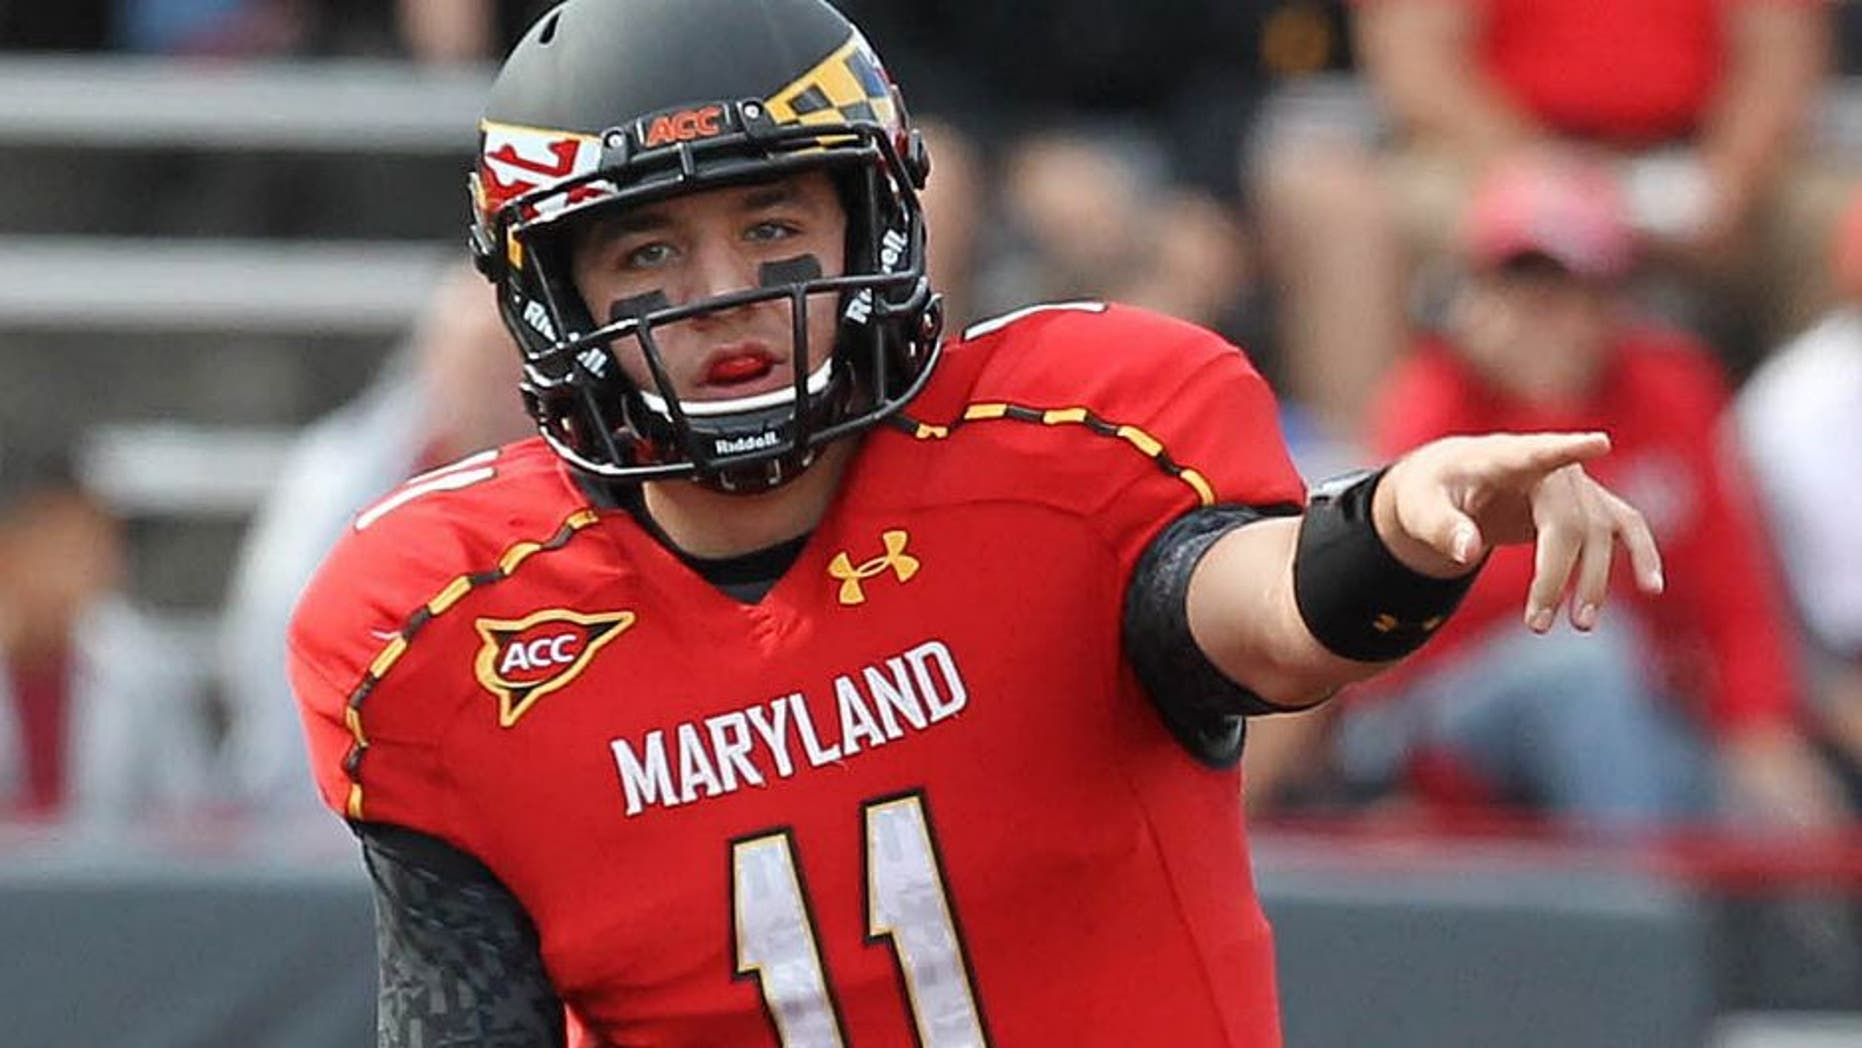 October 6, 2012; College Park, MD, USA; Maryland Terrapins quarterback Perry Hills (11) directs the offense against the Wake Forest Demon Deacons at Byrd Stadium. Mandatory Credit: Mitch Stringer-USA TODAY Sports